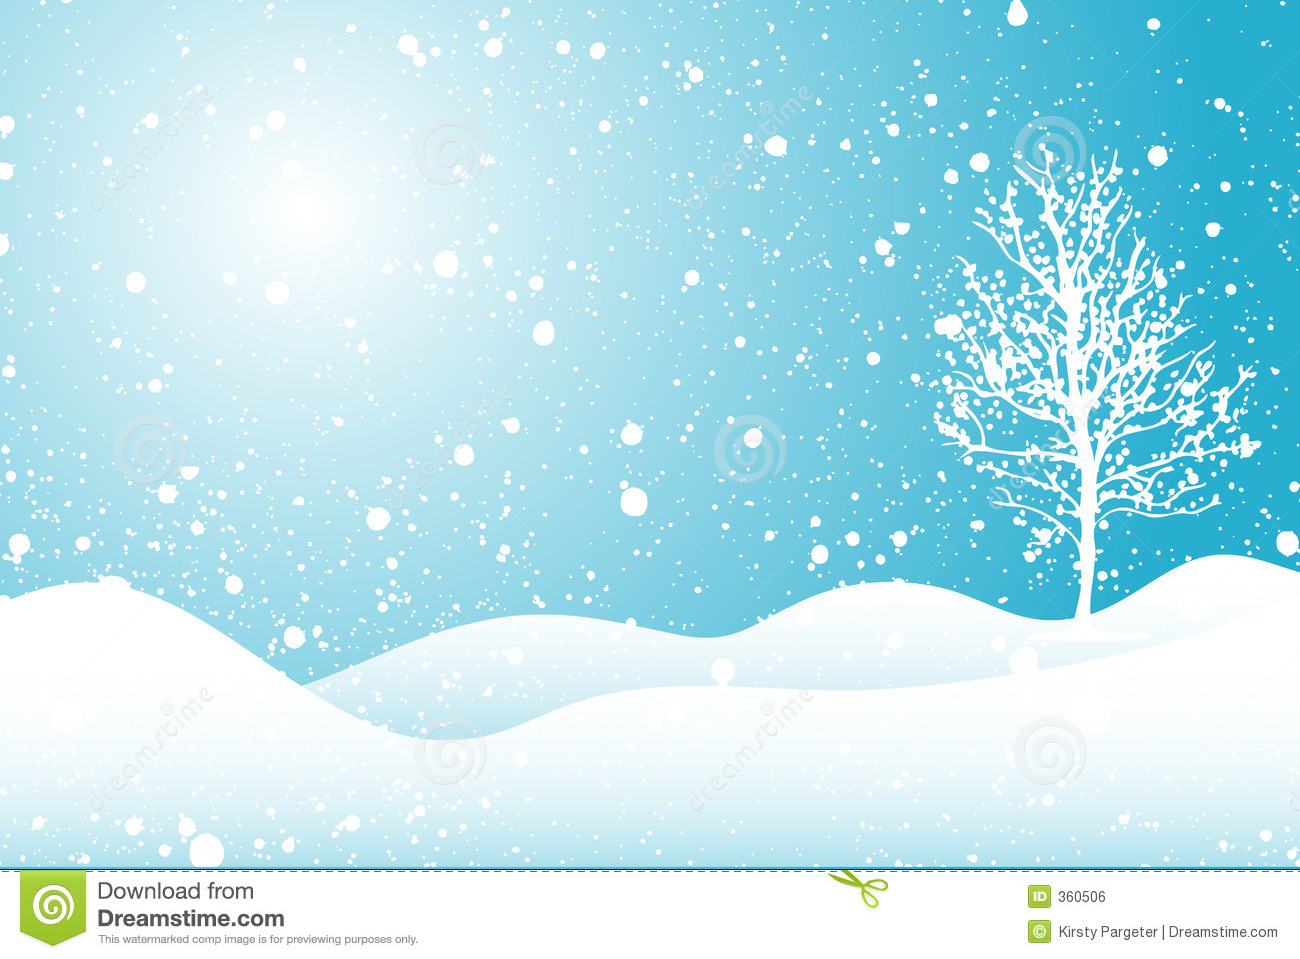 Free snow scene clipart picture royalty free download 62+ Winter Scene Clipart | ClipartLook picture royalty free download